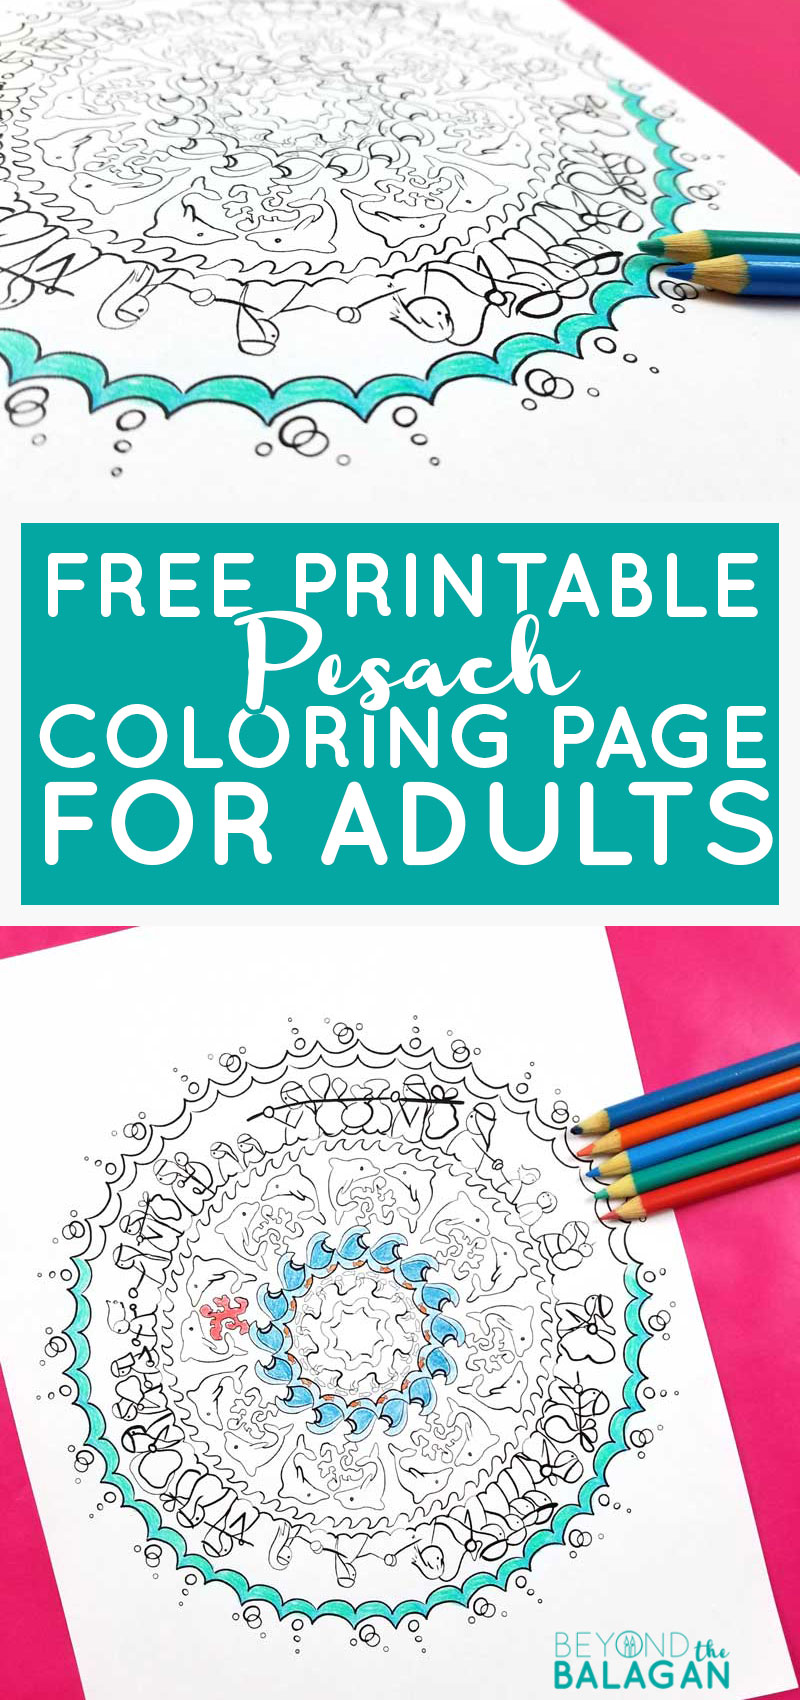 Click to download a free printable Passover coloring page for adults - a splitting the sea mandala! This fun passover craft is a great pesach project for teens too!